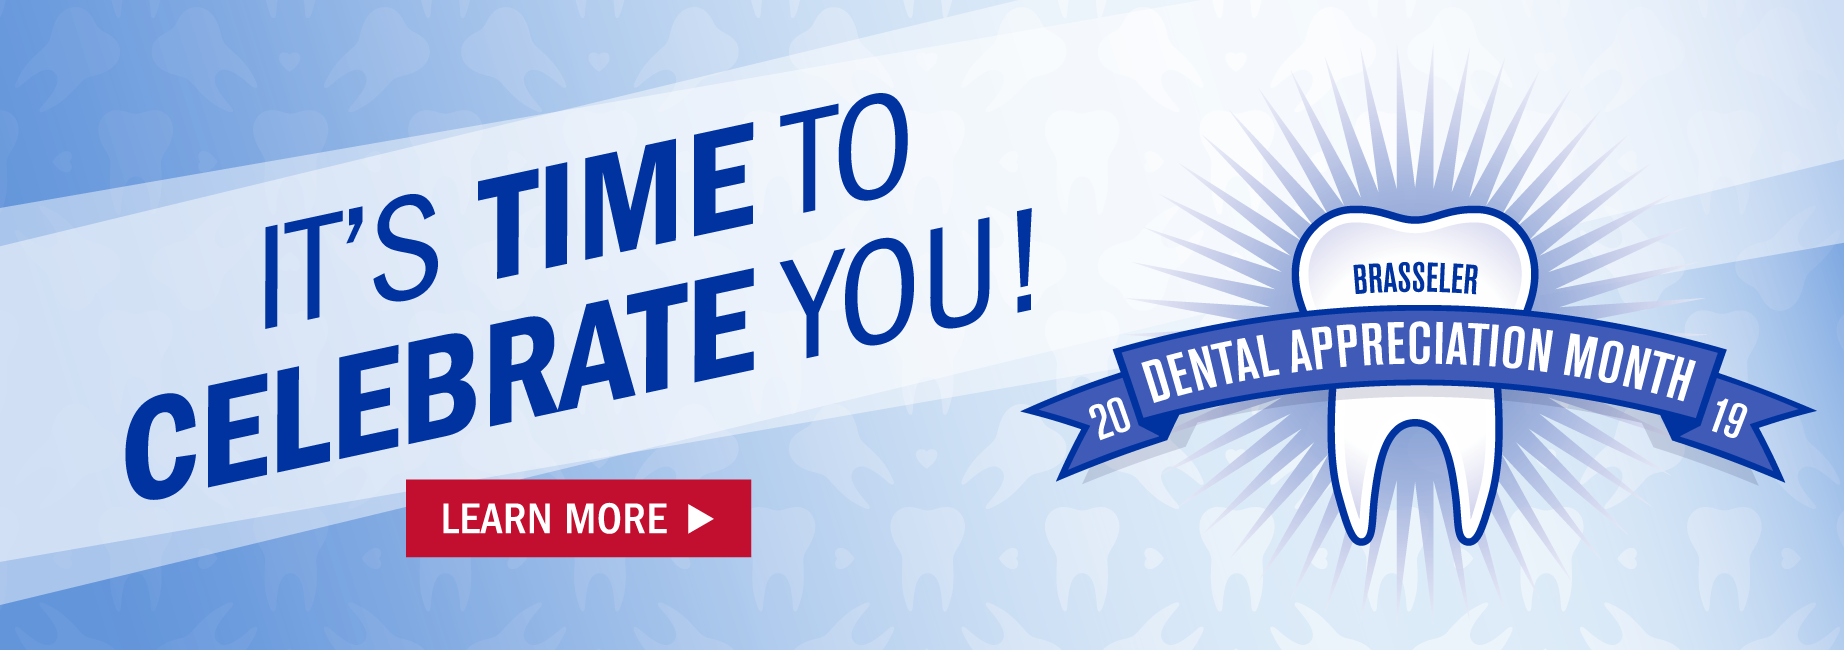 Dental Appreciation Month. It's Time to Celebrate You.